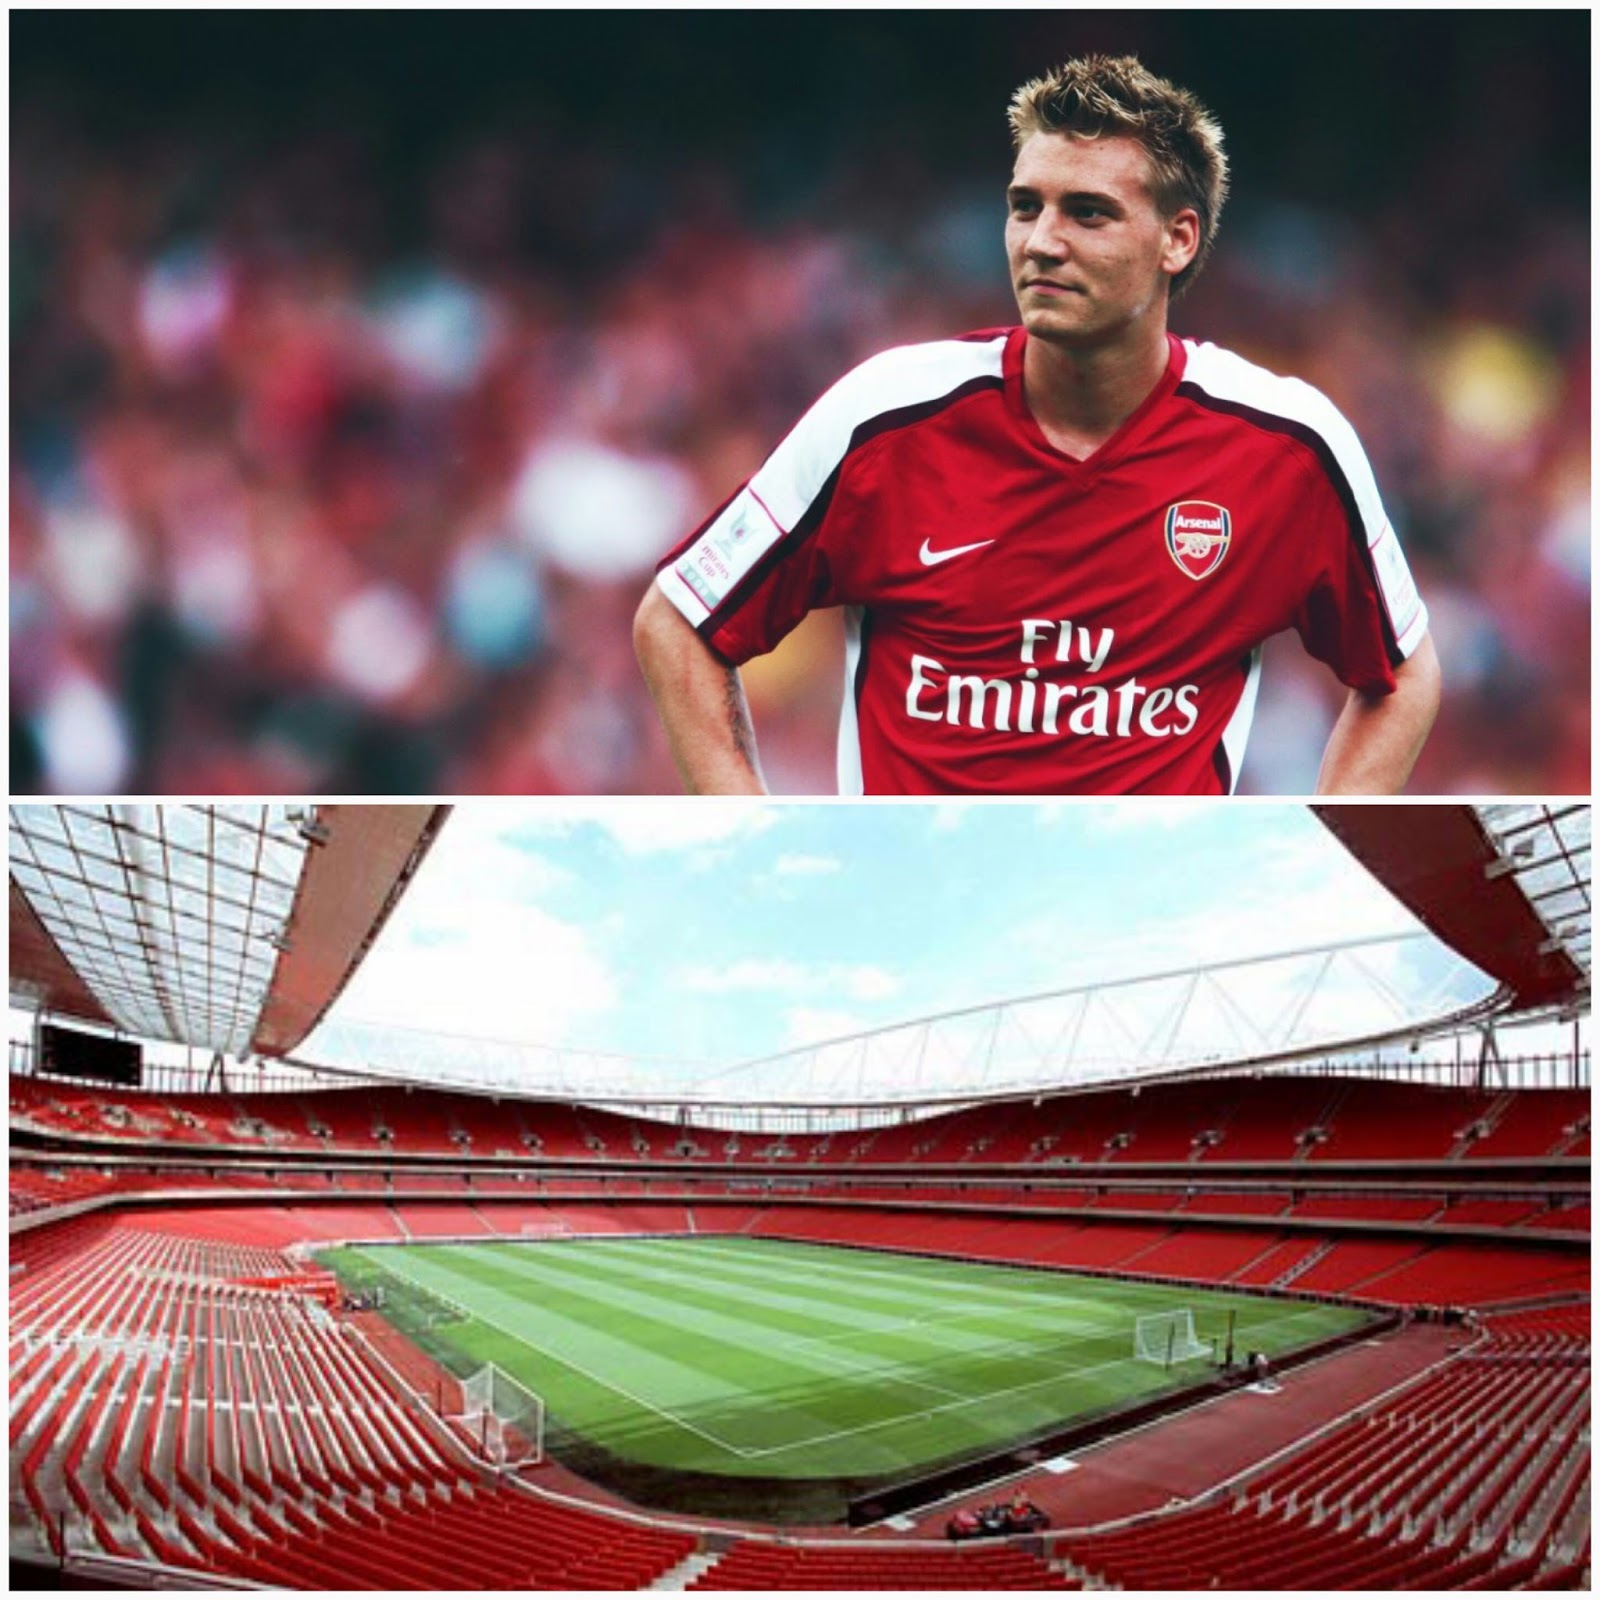 73a6bee891b Players like Bendtner were used in order fund the construction of the  Emirates